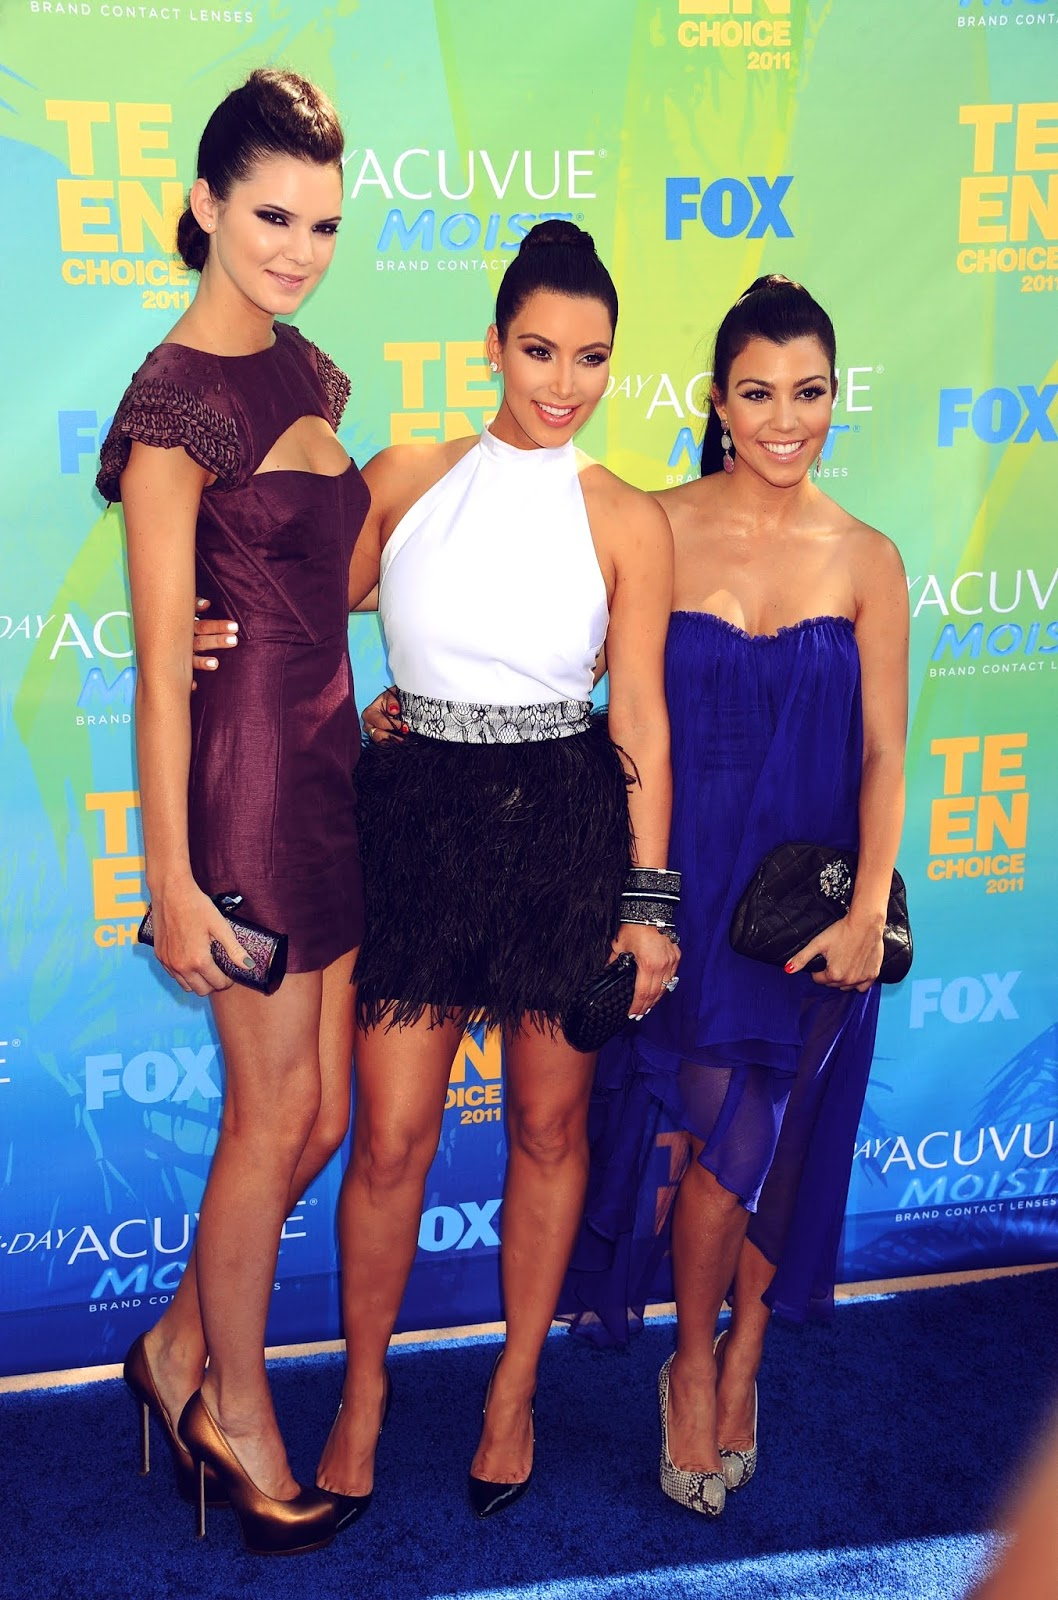 06- Teen Choice Awards in August 11, 2011